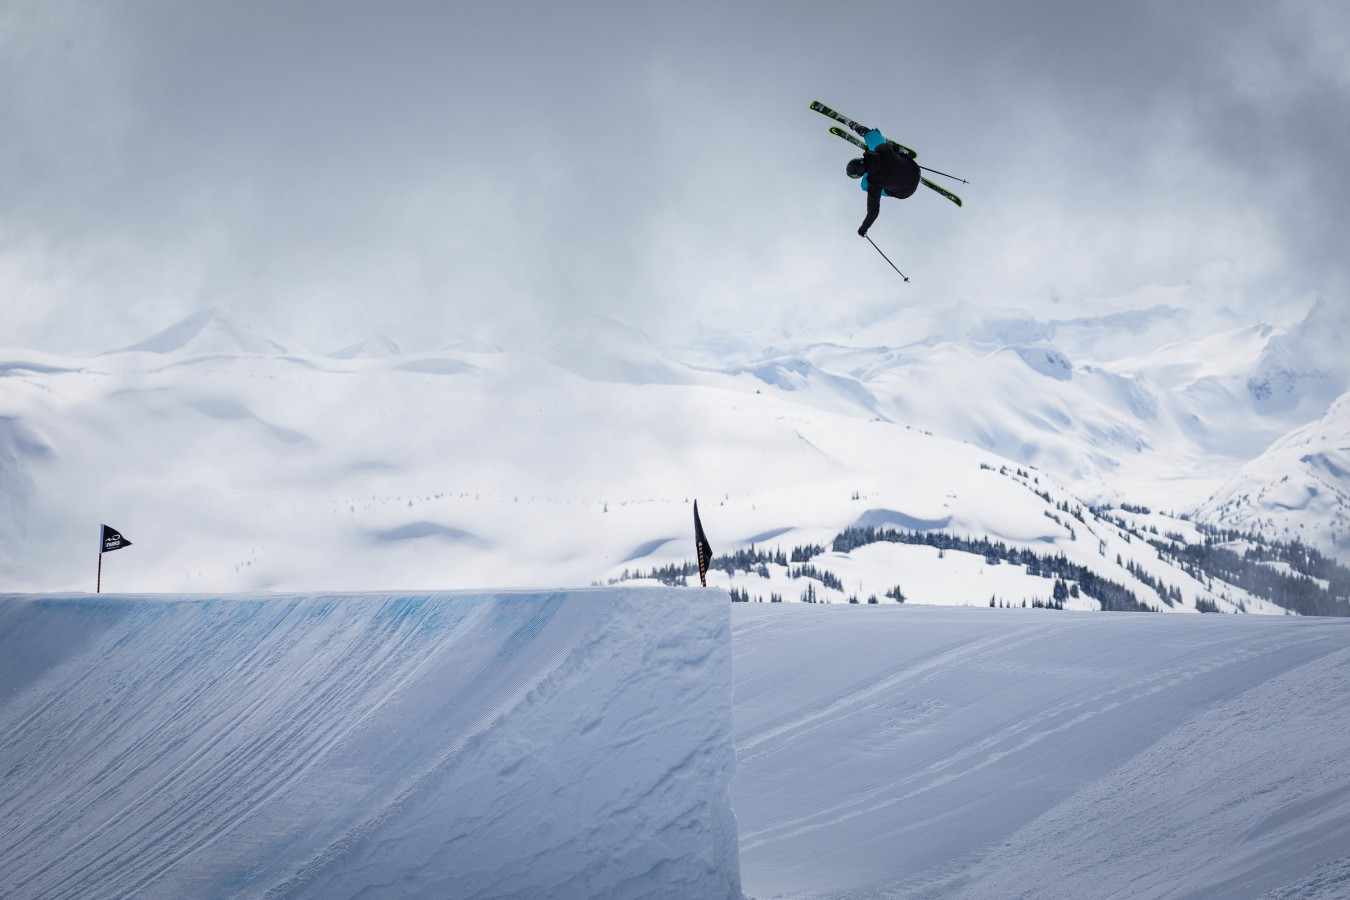 Evan MacEachran trains with the rest of the Canada Ski & Snowboard team in Whistler, BC on seventh Heaven.